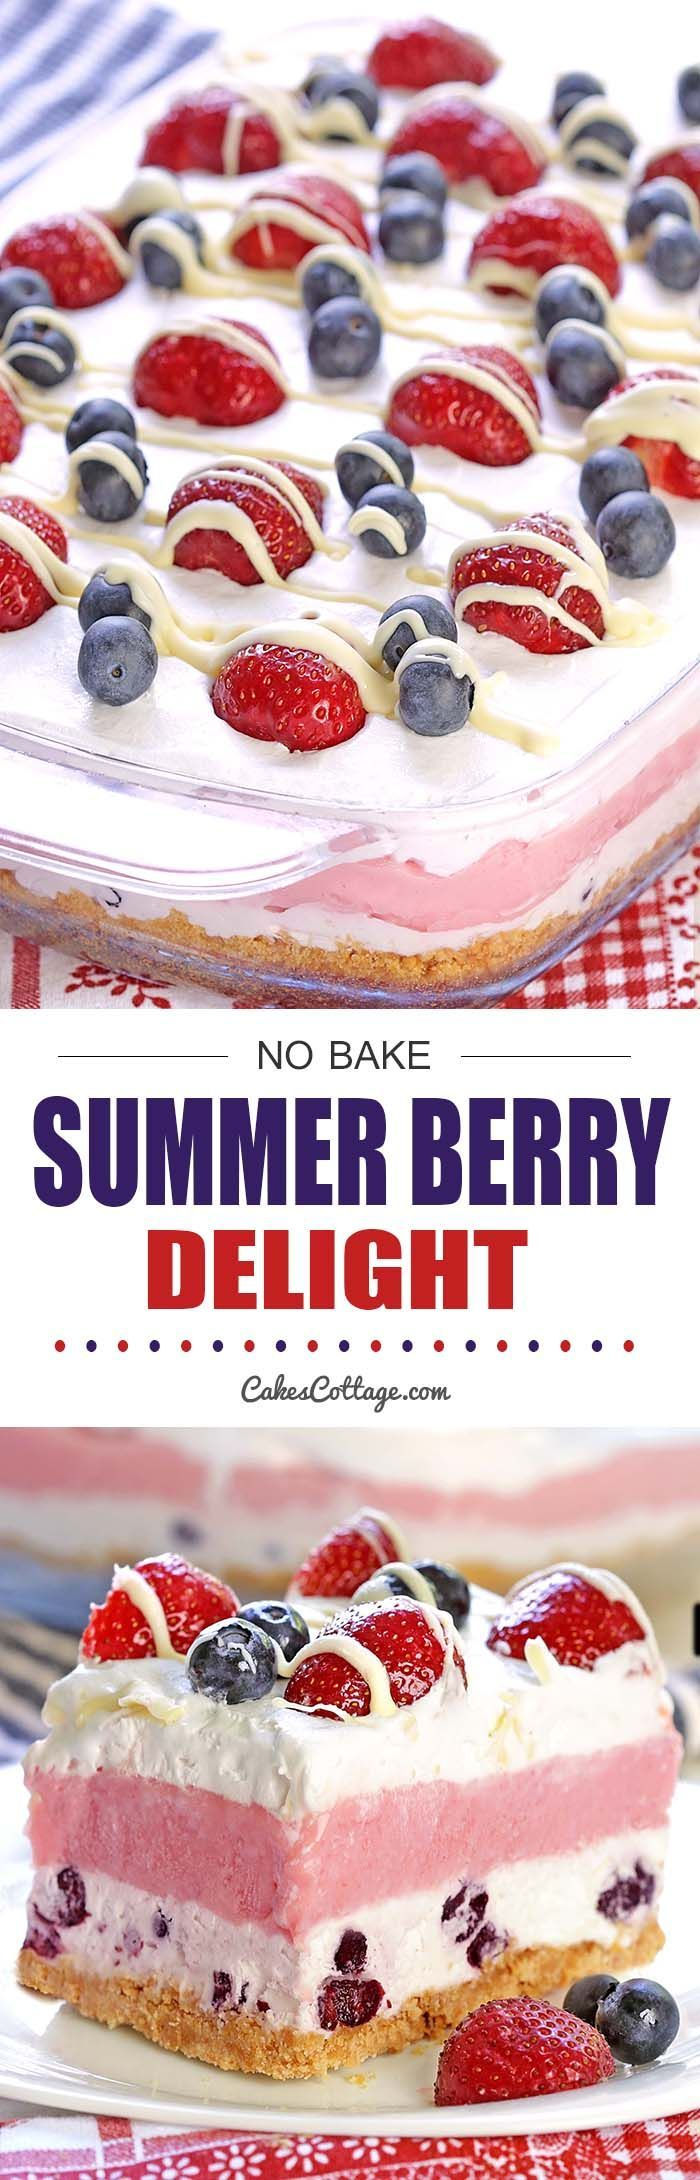 No Bake Summer Berry Delight - A perfect red, white, and blue no bake summer berry delight for your summer holiday celebrations.